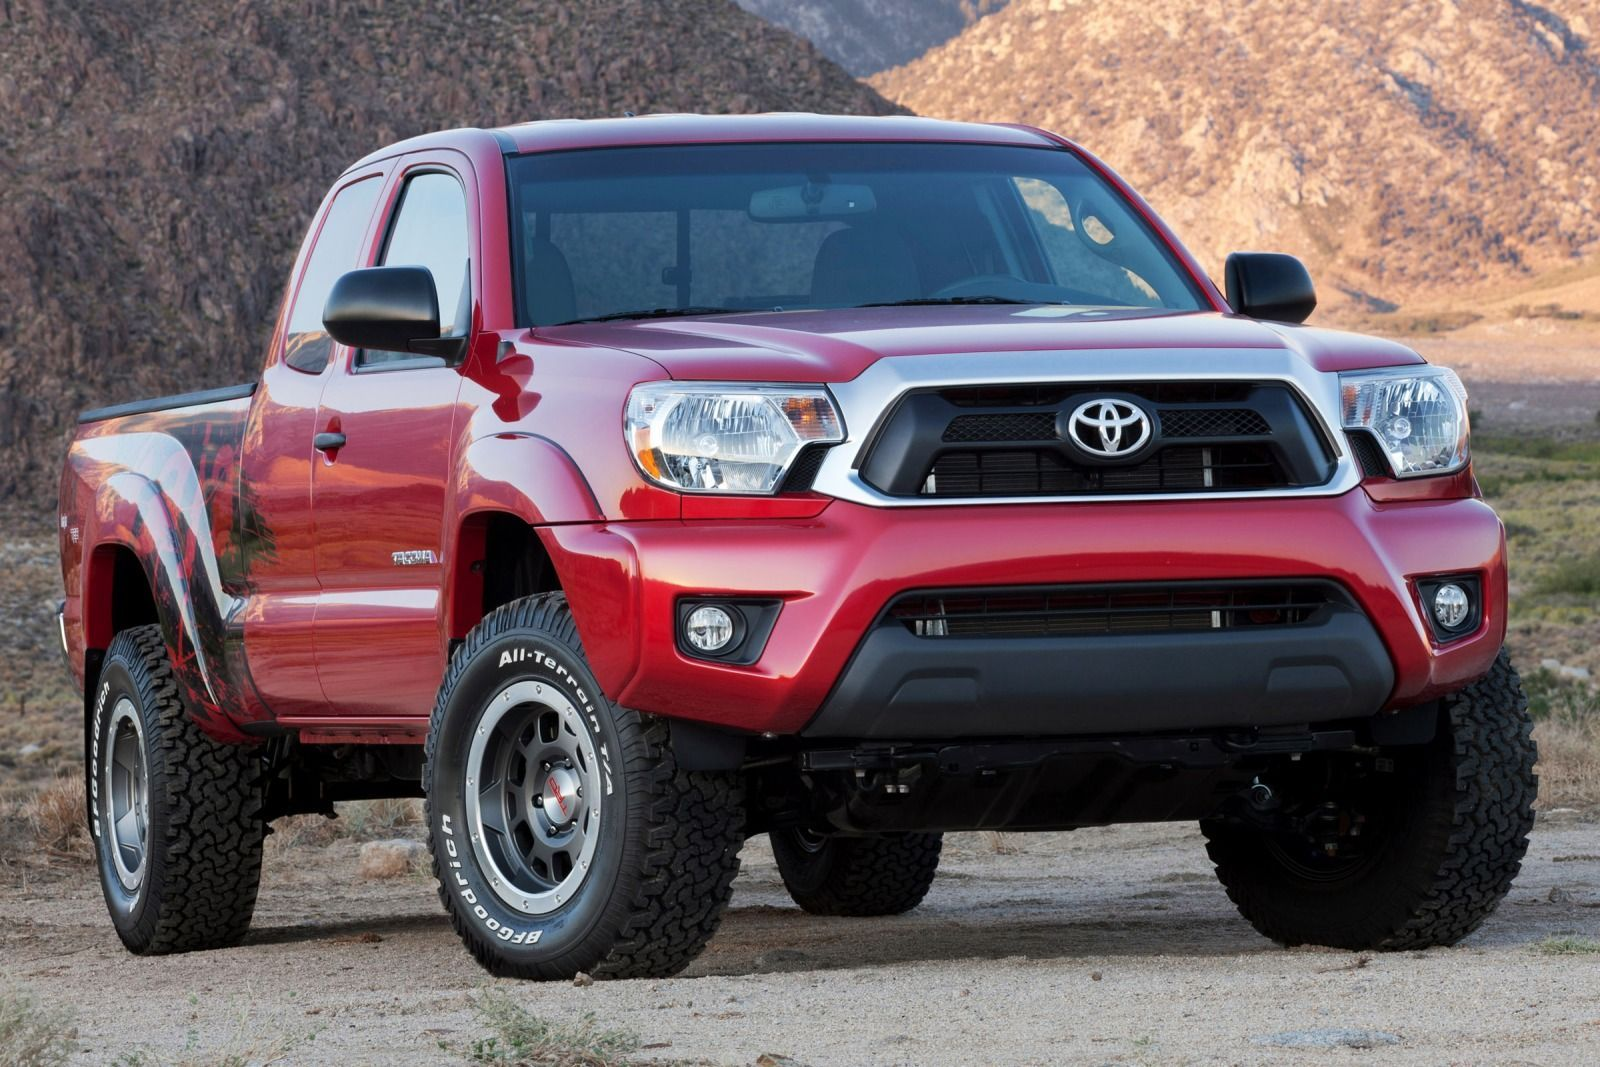 2016 toyota tacoma trd sport price malaysia toyota recommendation pinterest toyota tacoma trd sport toyota tacoma trd and tacoma trd